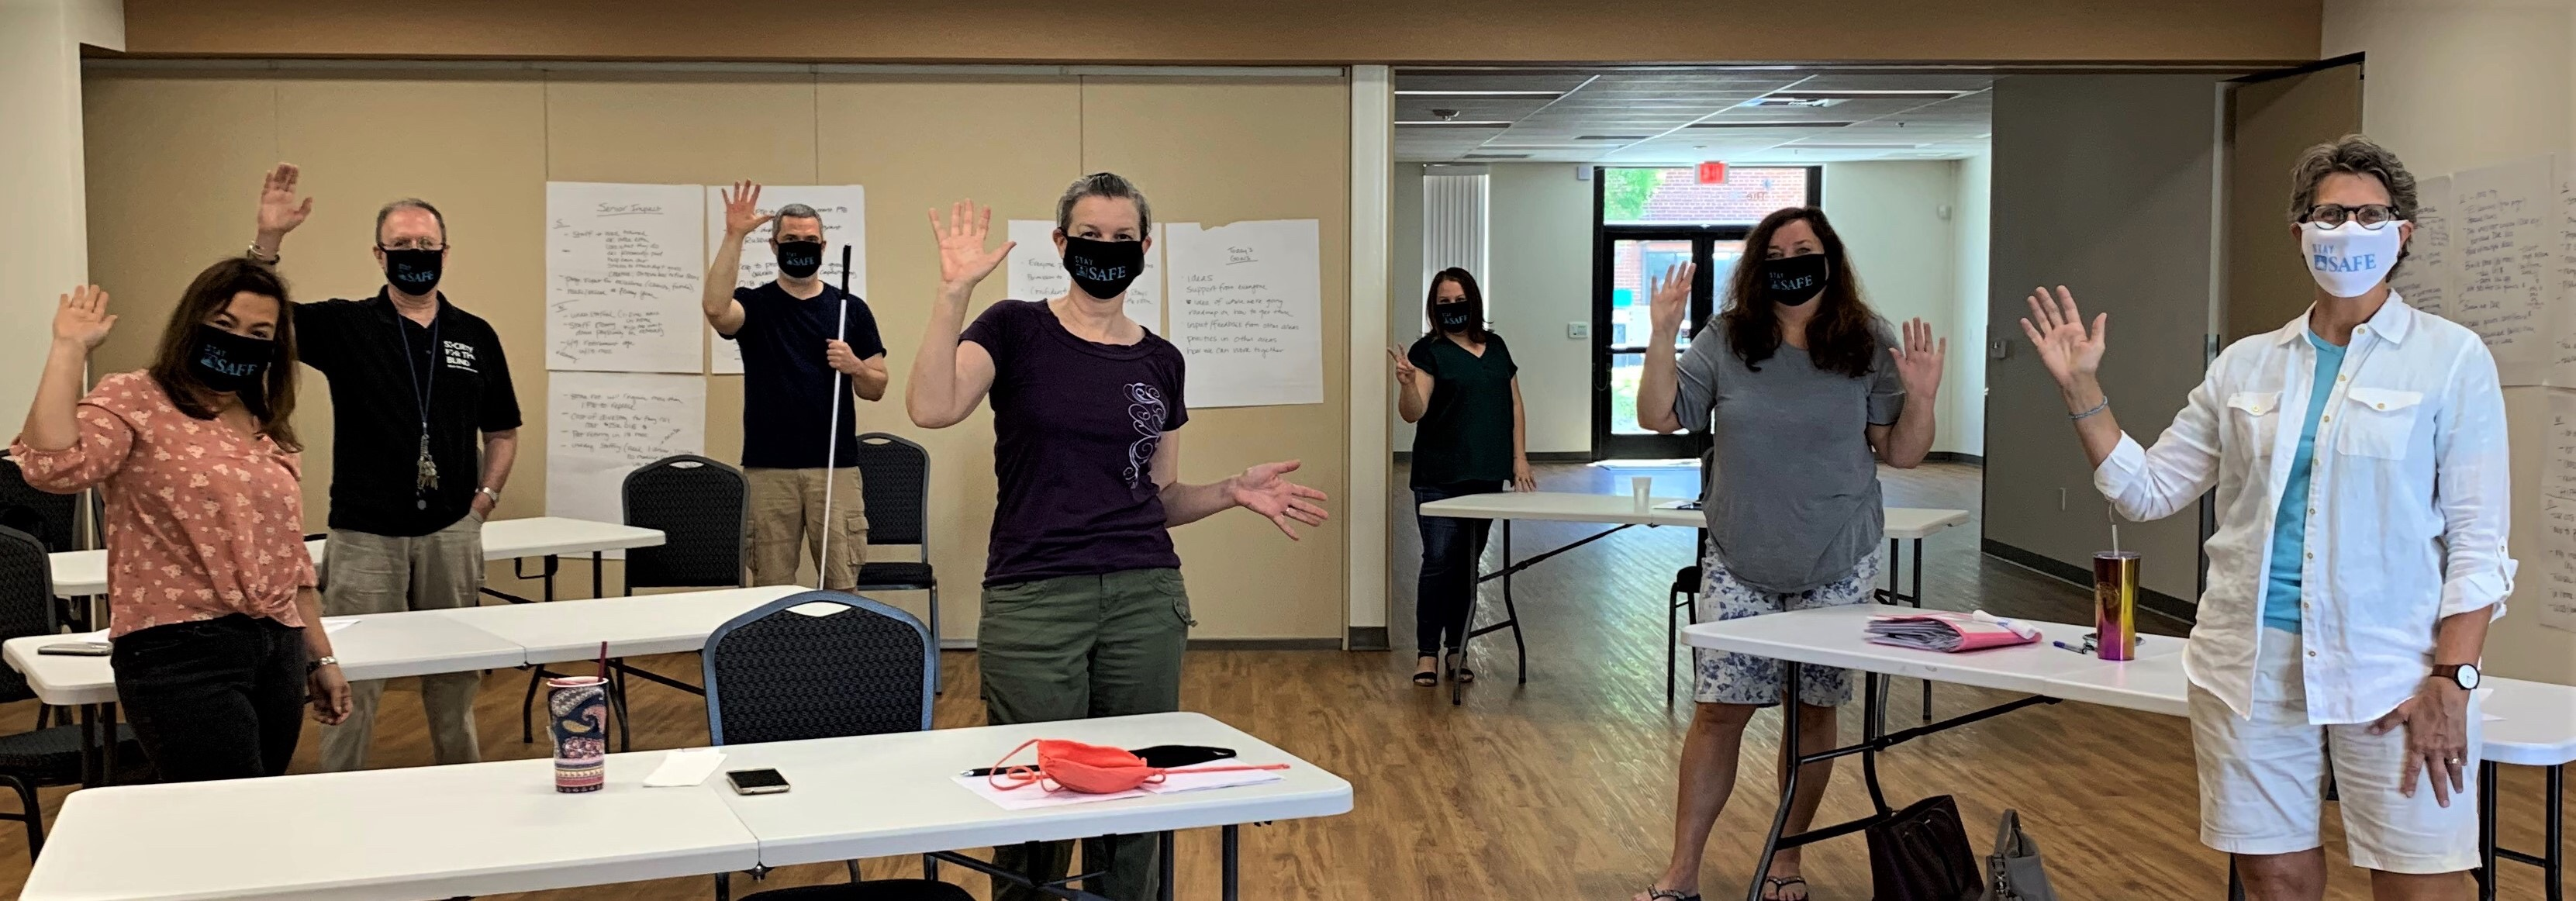 Members of the Society for the Blind pose wearing their Stay SAFE masks at a planning meeting